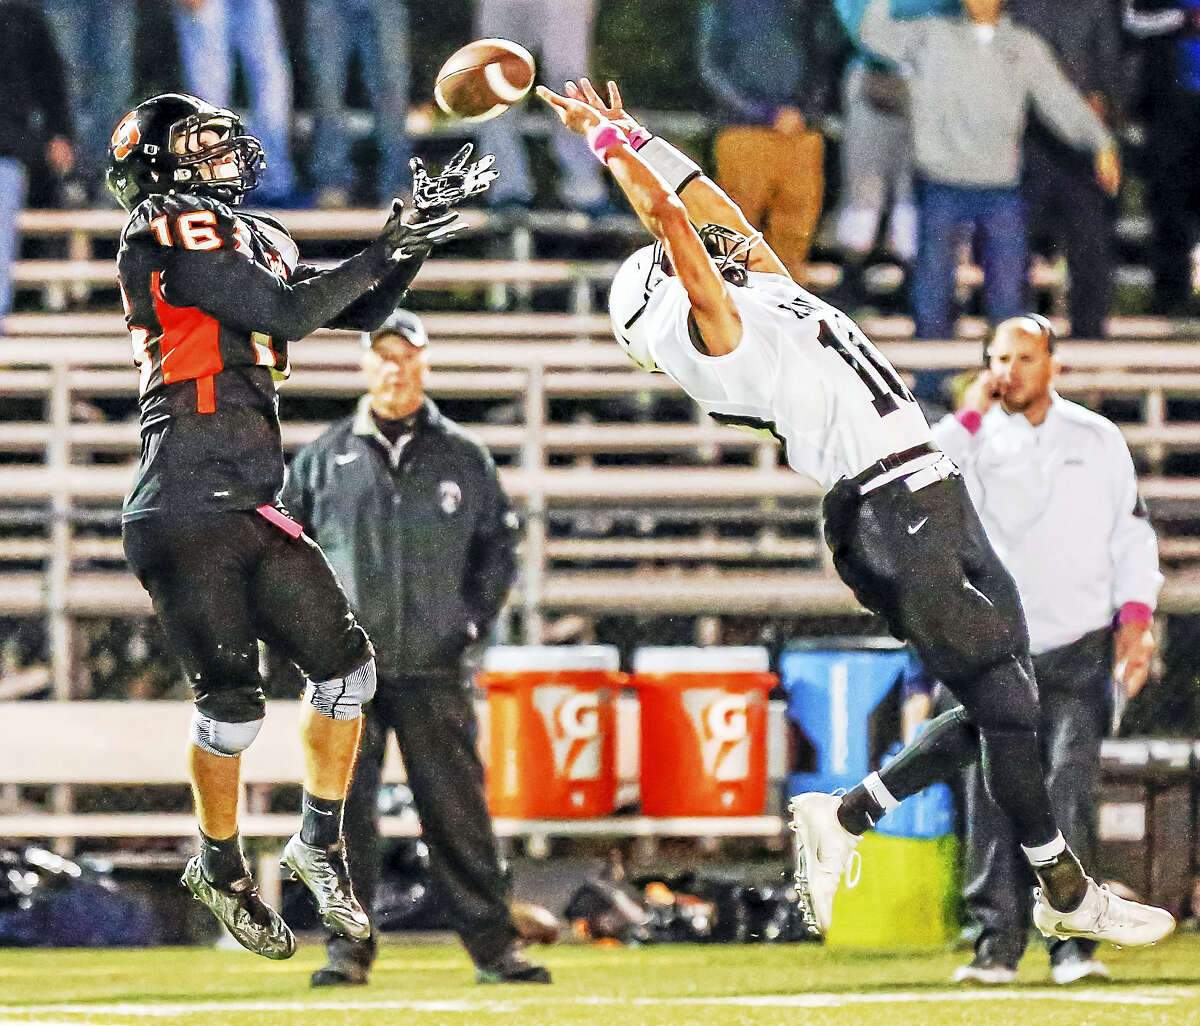 Shelton receiver Anthoony Shiavo(16) completes a pass of the reach of Xaveri Owen Gonzalez(10) to tie the score at 14 during the 2nd quarter during the SCC Tier 1 game Saturday night.-John Vanacore/New Haven register